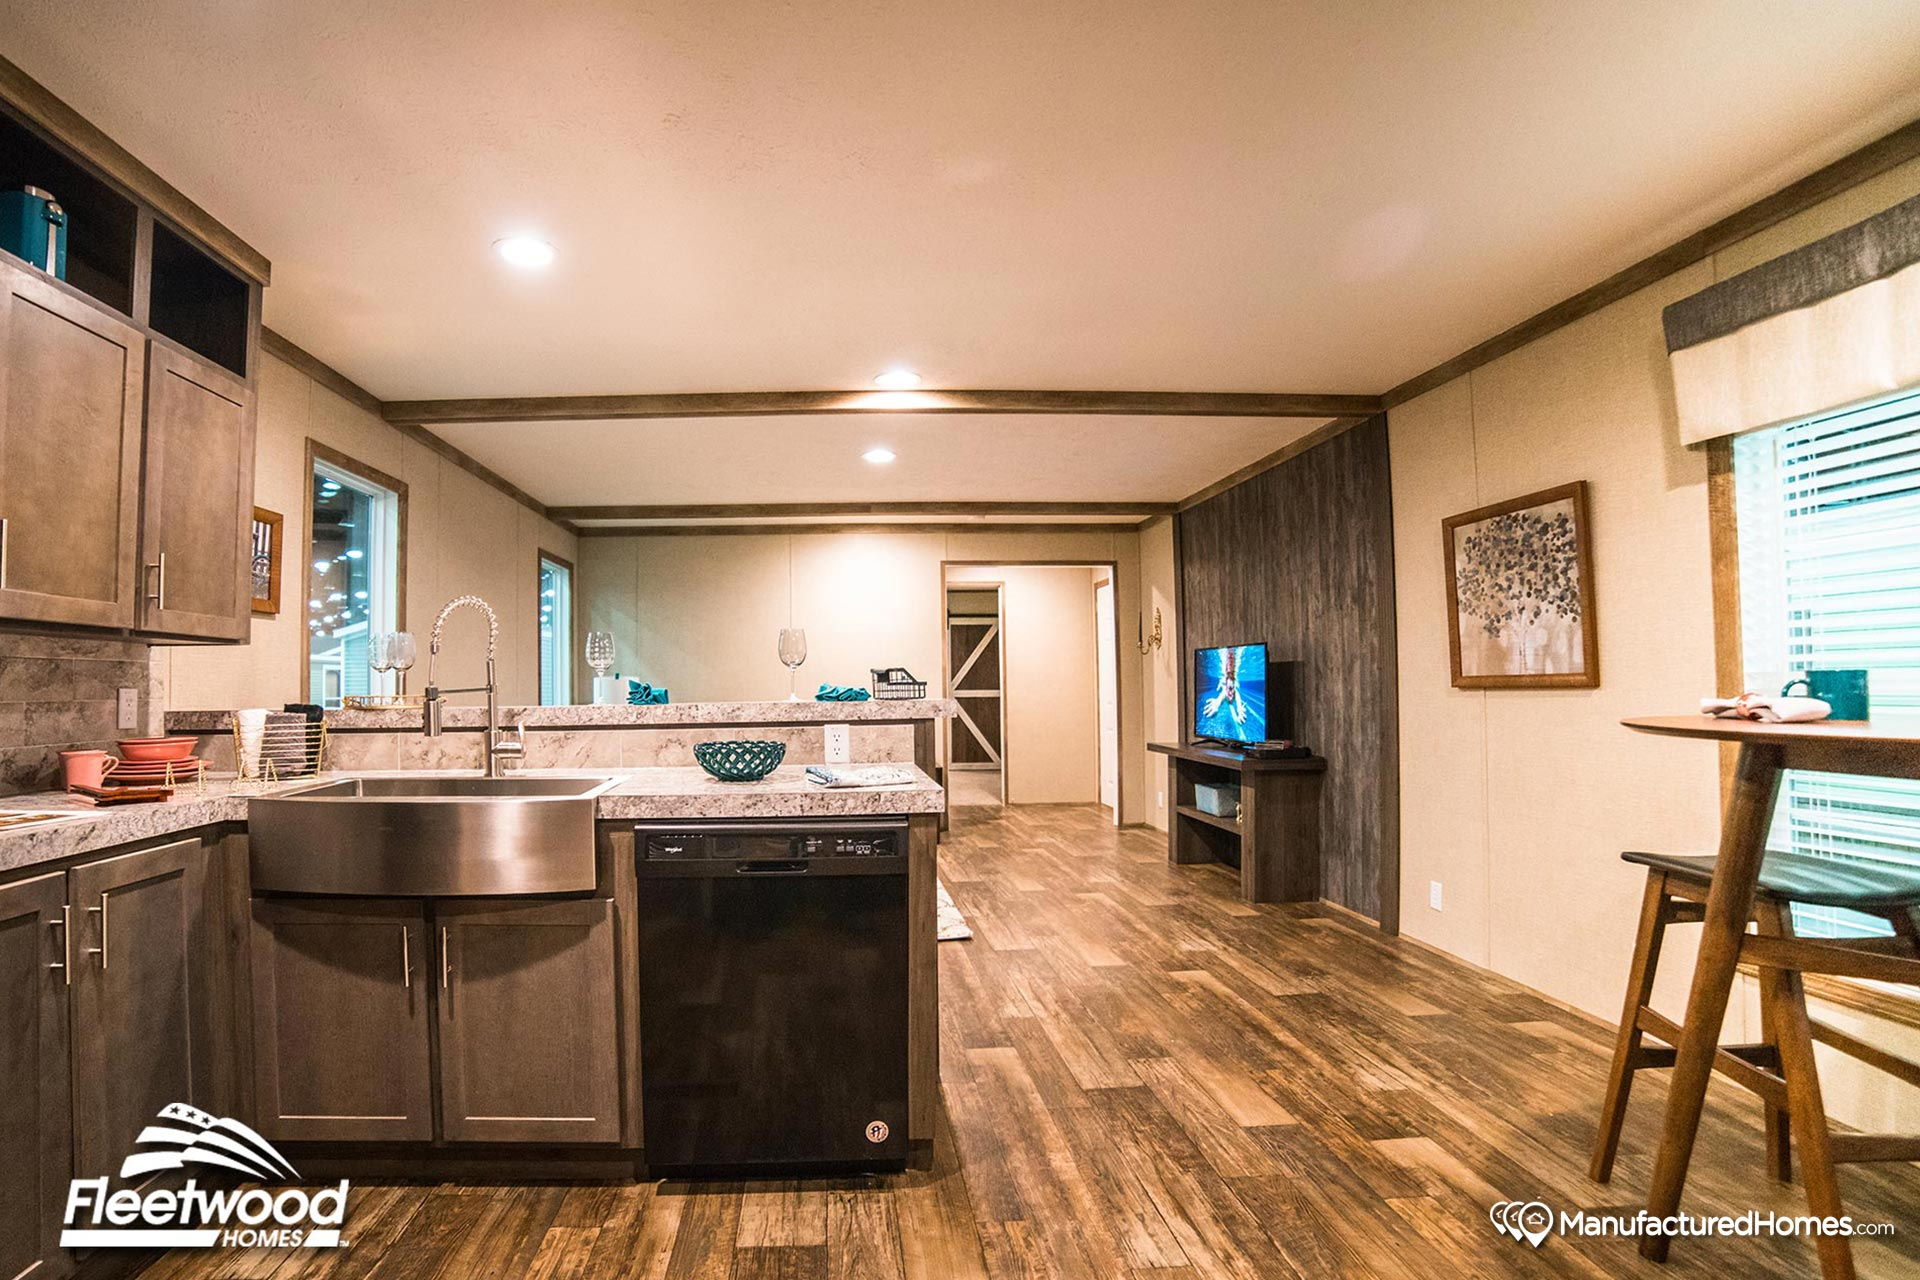 Canyon Lake / 16763Y The General by Fleetwood Homes Lafayette